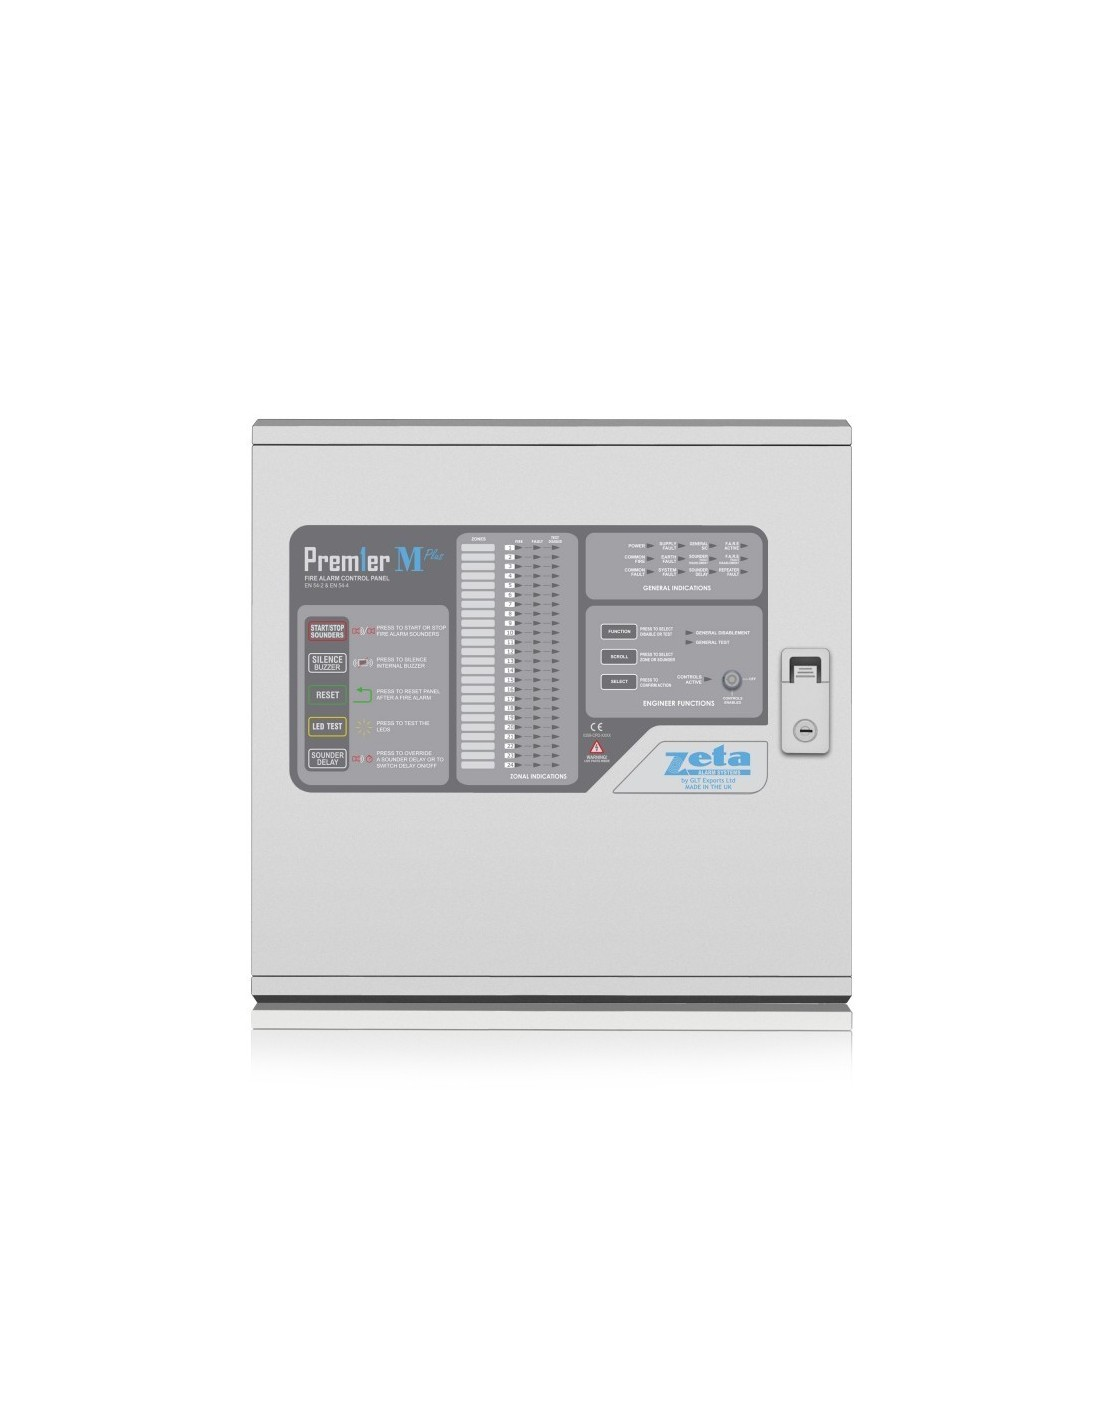 hight resolution of  premier m 16 zone panel the premier m plus 16 zone panel is the ideal